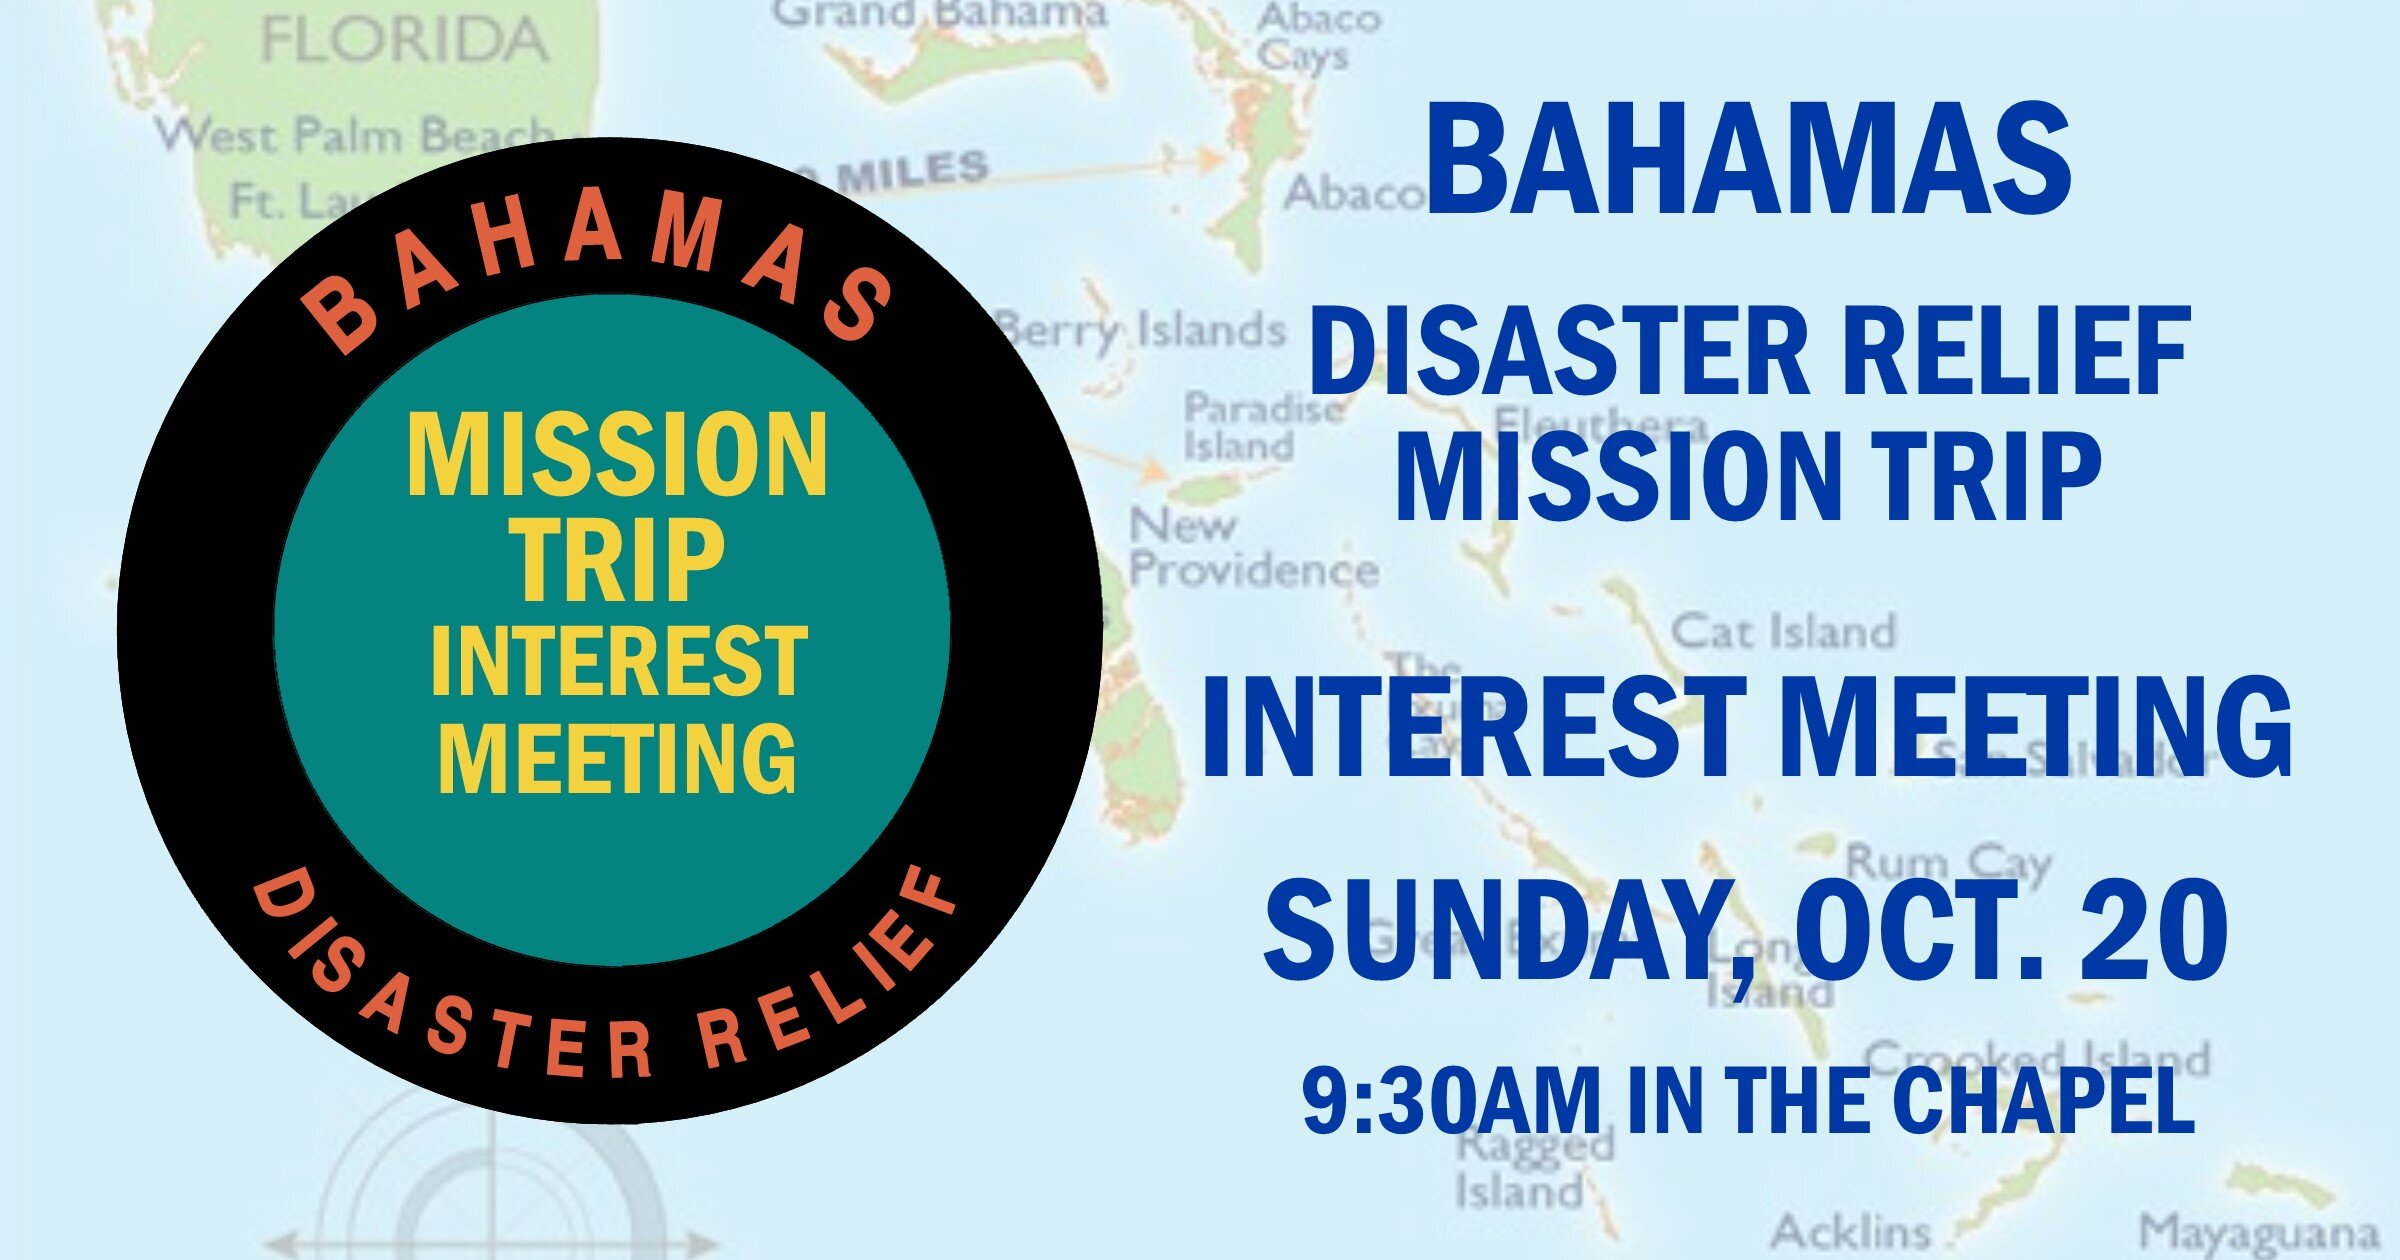 Bahamas mission trip interest meeting fb.jpg